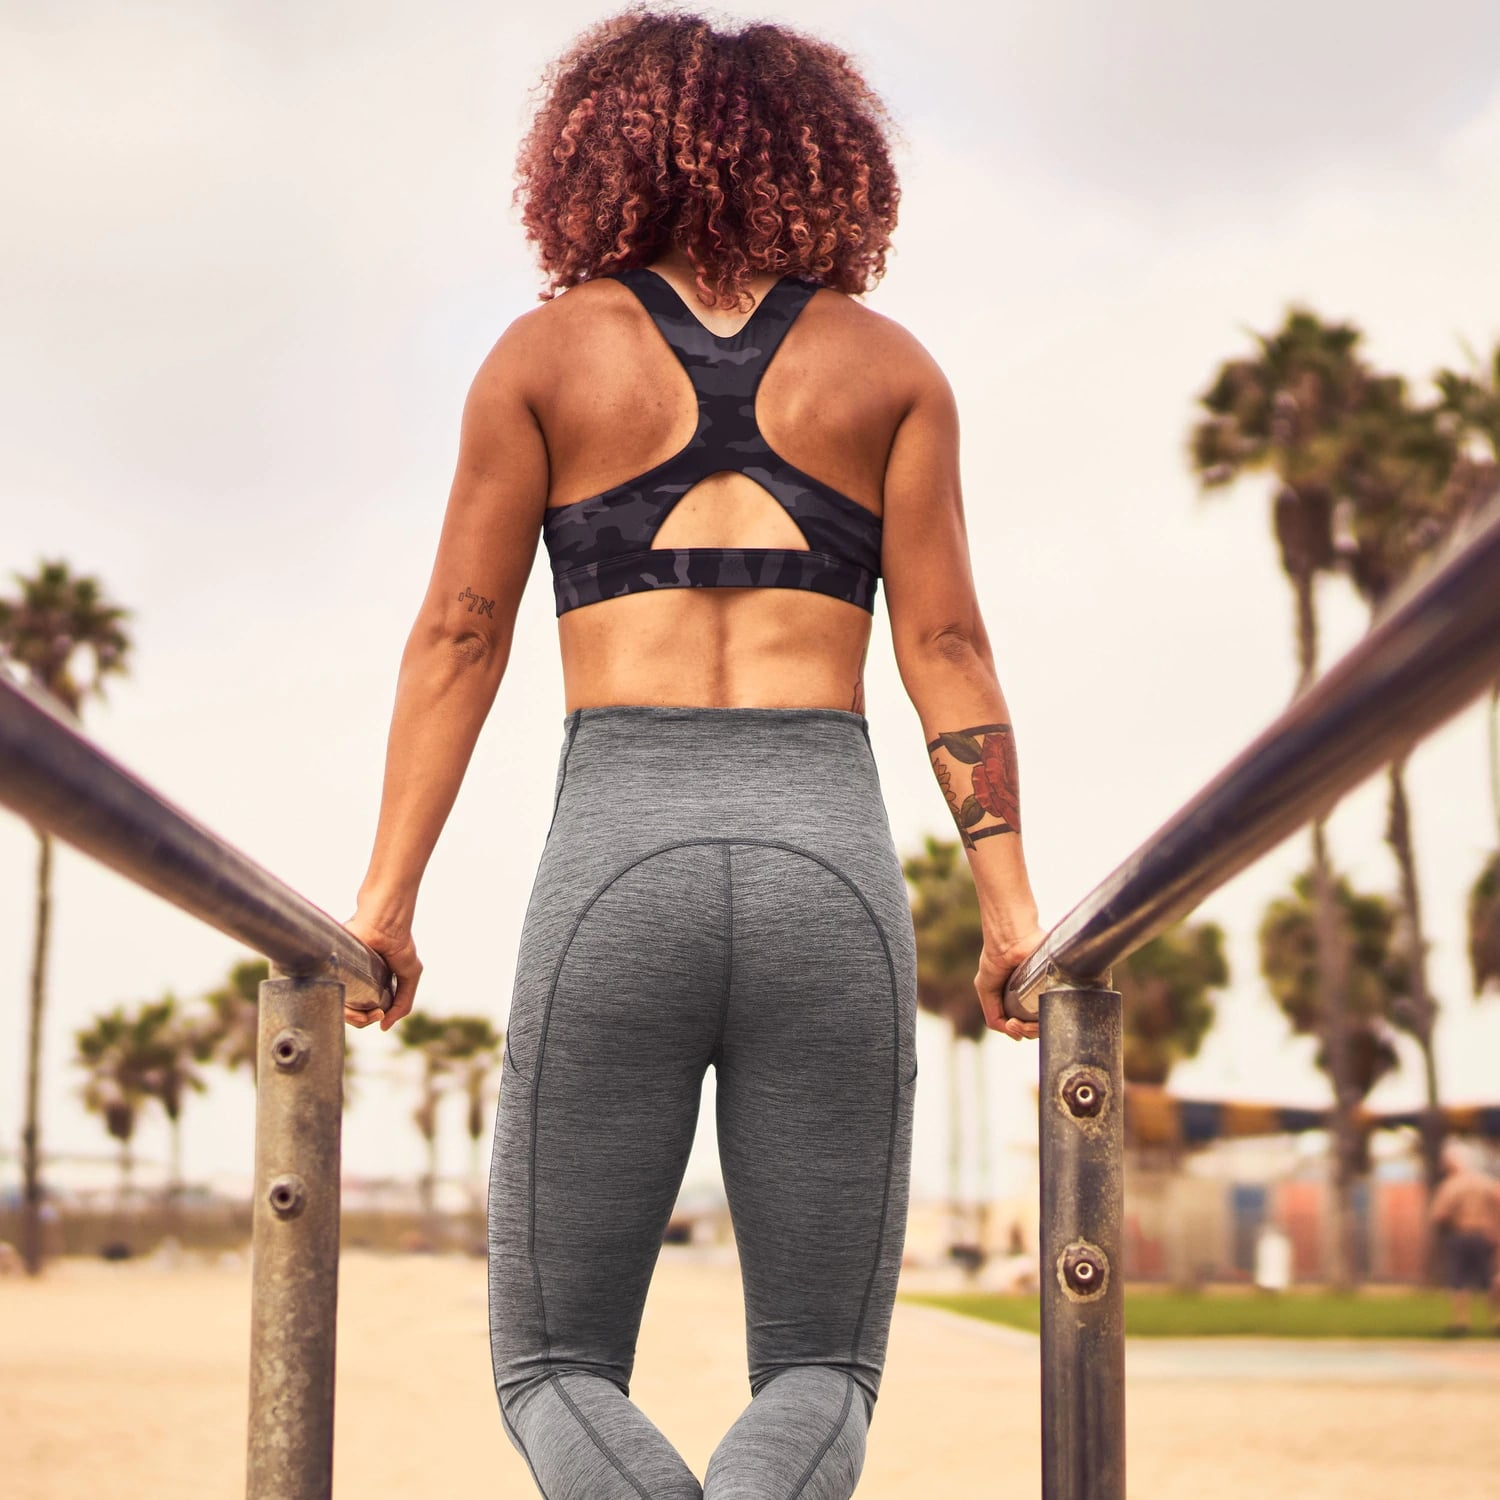 The Top-Rated Workout Clothes at Athleta